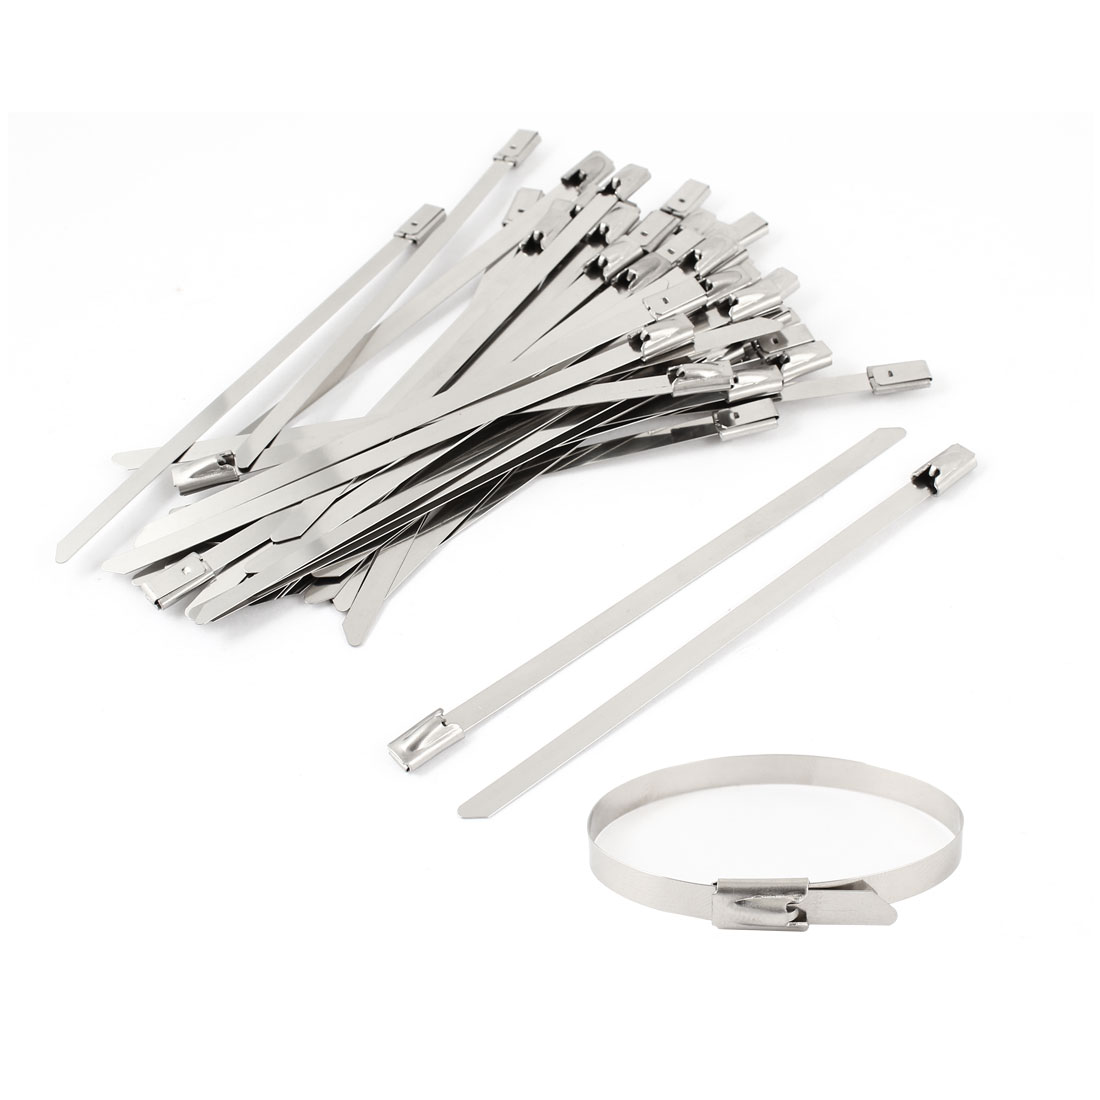 "50pcs 3.9"" Long 4.6mm Width Stainless Steel Sprayed Cable Tie Band Clamp"